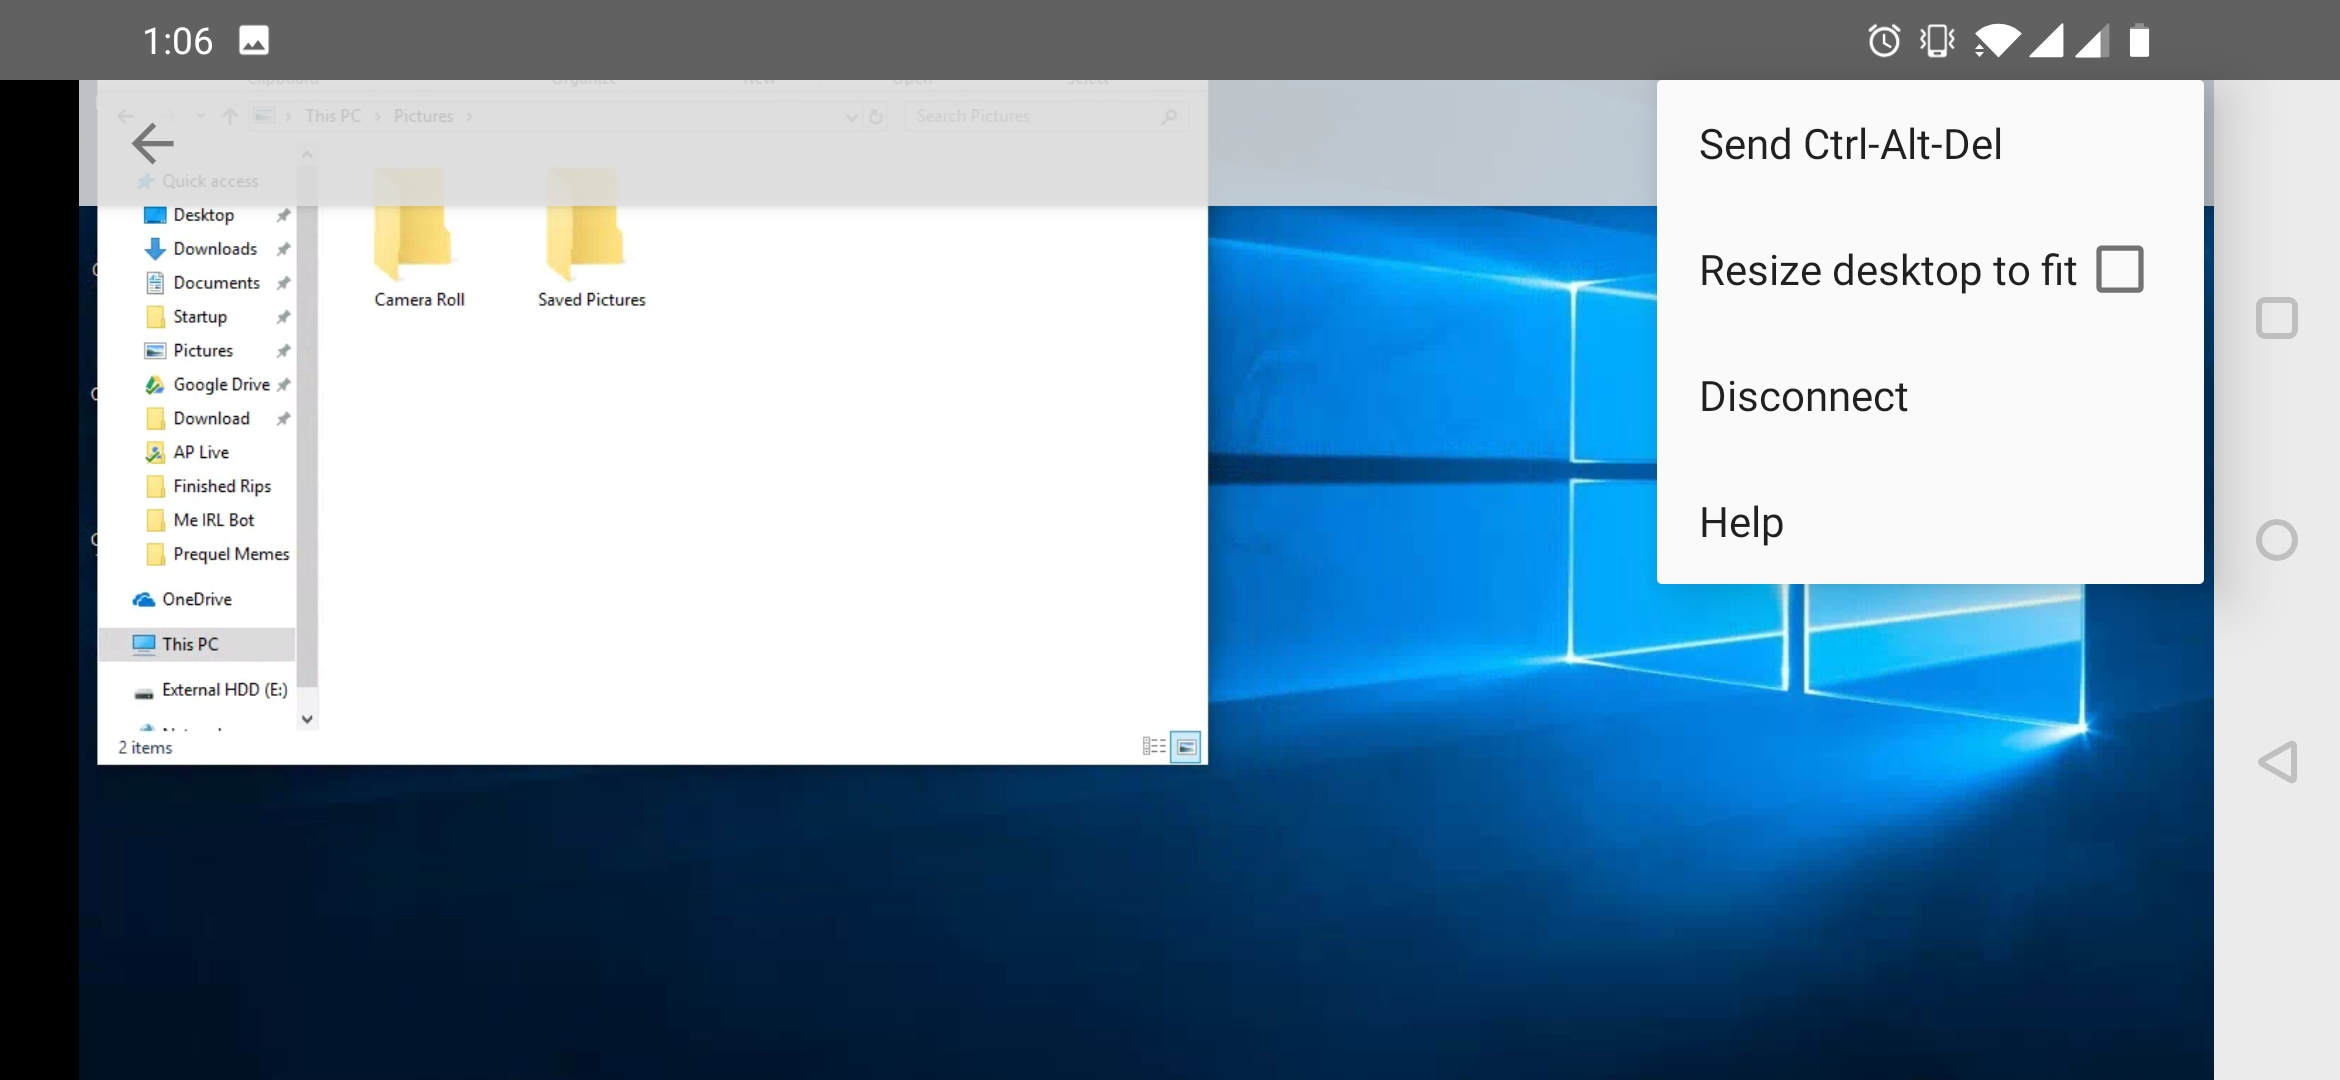 Chrome Remote Desktop v71 adds non-functional display resize